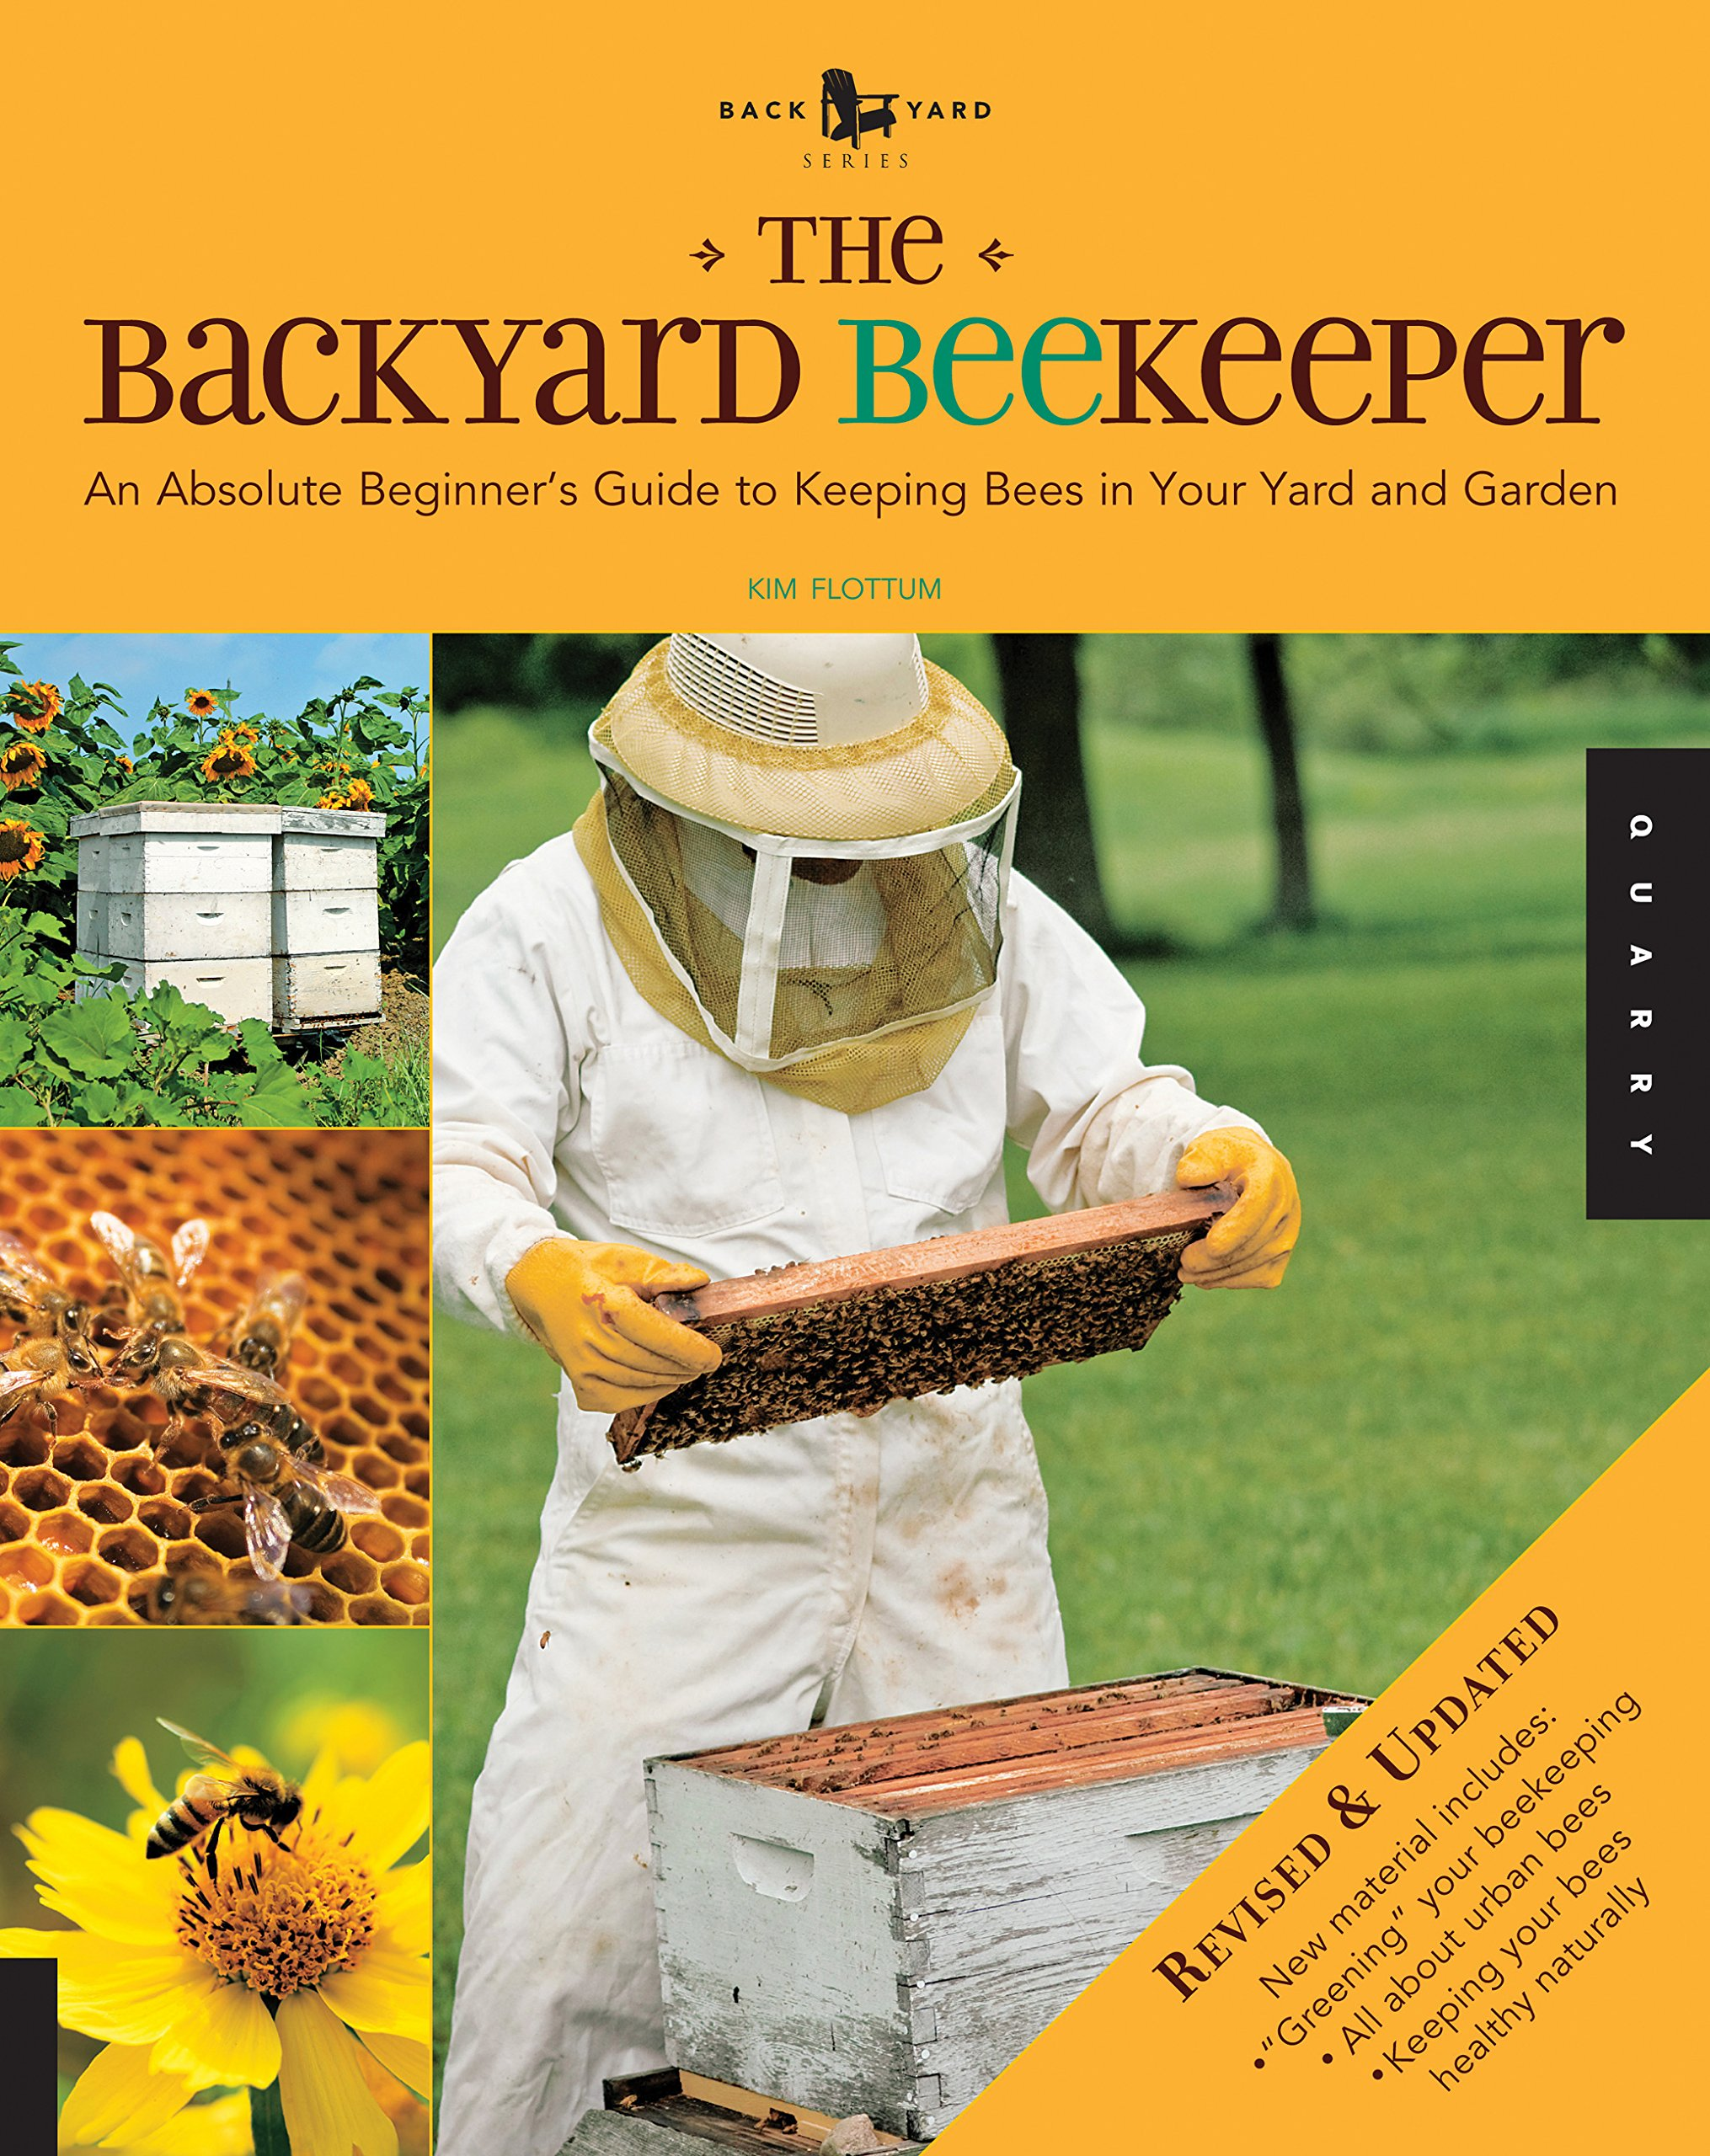 "the backyard beekeeper - By Kim FlottumThe Backyard Beekeeper, now revised and expanded, makes the time-honored and complex tradition of beekeeping an enjoyable and accessible backyard pastime that will appeal to gardeners, crafters, and cooks everywhere. This expanded edition gives you even more information on ""greening"" your beekeeping with sustainable practices, pesticide-resistant bees, and urban and suburban beekeeping. More than a guide to beekeeping, it is a handbook for harvesting the products of a beehive and a honey cookbook–all in one lively, beautifully illustrated reference.This complete honey bee resource contains general information on bees; a how-to guide to the art of bee keeping and how to set up, care for, and harvest honey from your own colonies; as well as tons of bee-related facts and projects. You'll learn the best place to locate your new bee colonies for their safety and yours, and you'll study the best organic and nontoxic ways to care for your bees, from providing fresh water and protection from the elements to keeping them healthy, happy, and productive. Recipes of delicious treats, and instructions on how to use honey and beeswax to make candles and beauty treatments are also included."